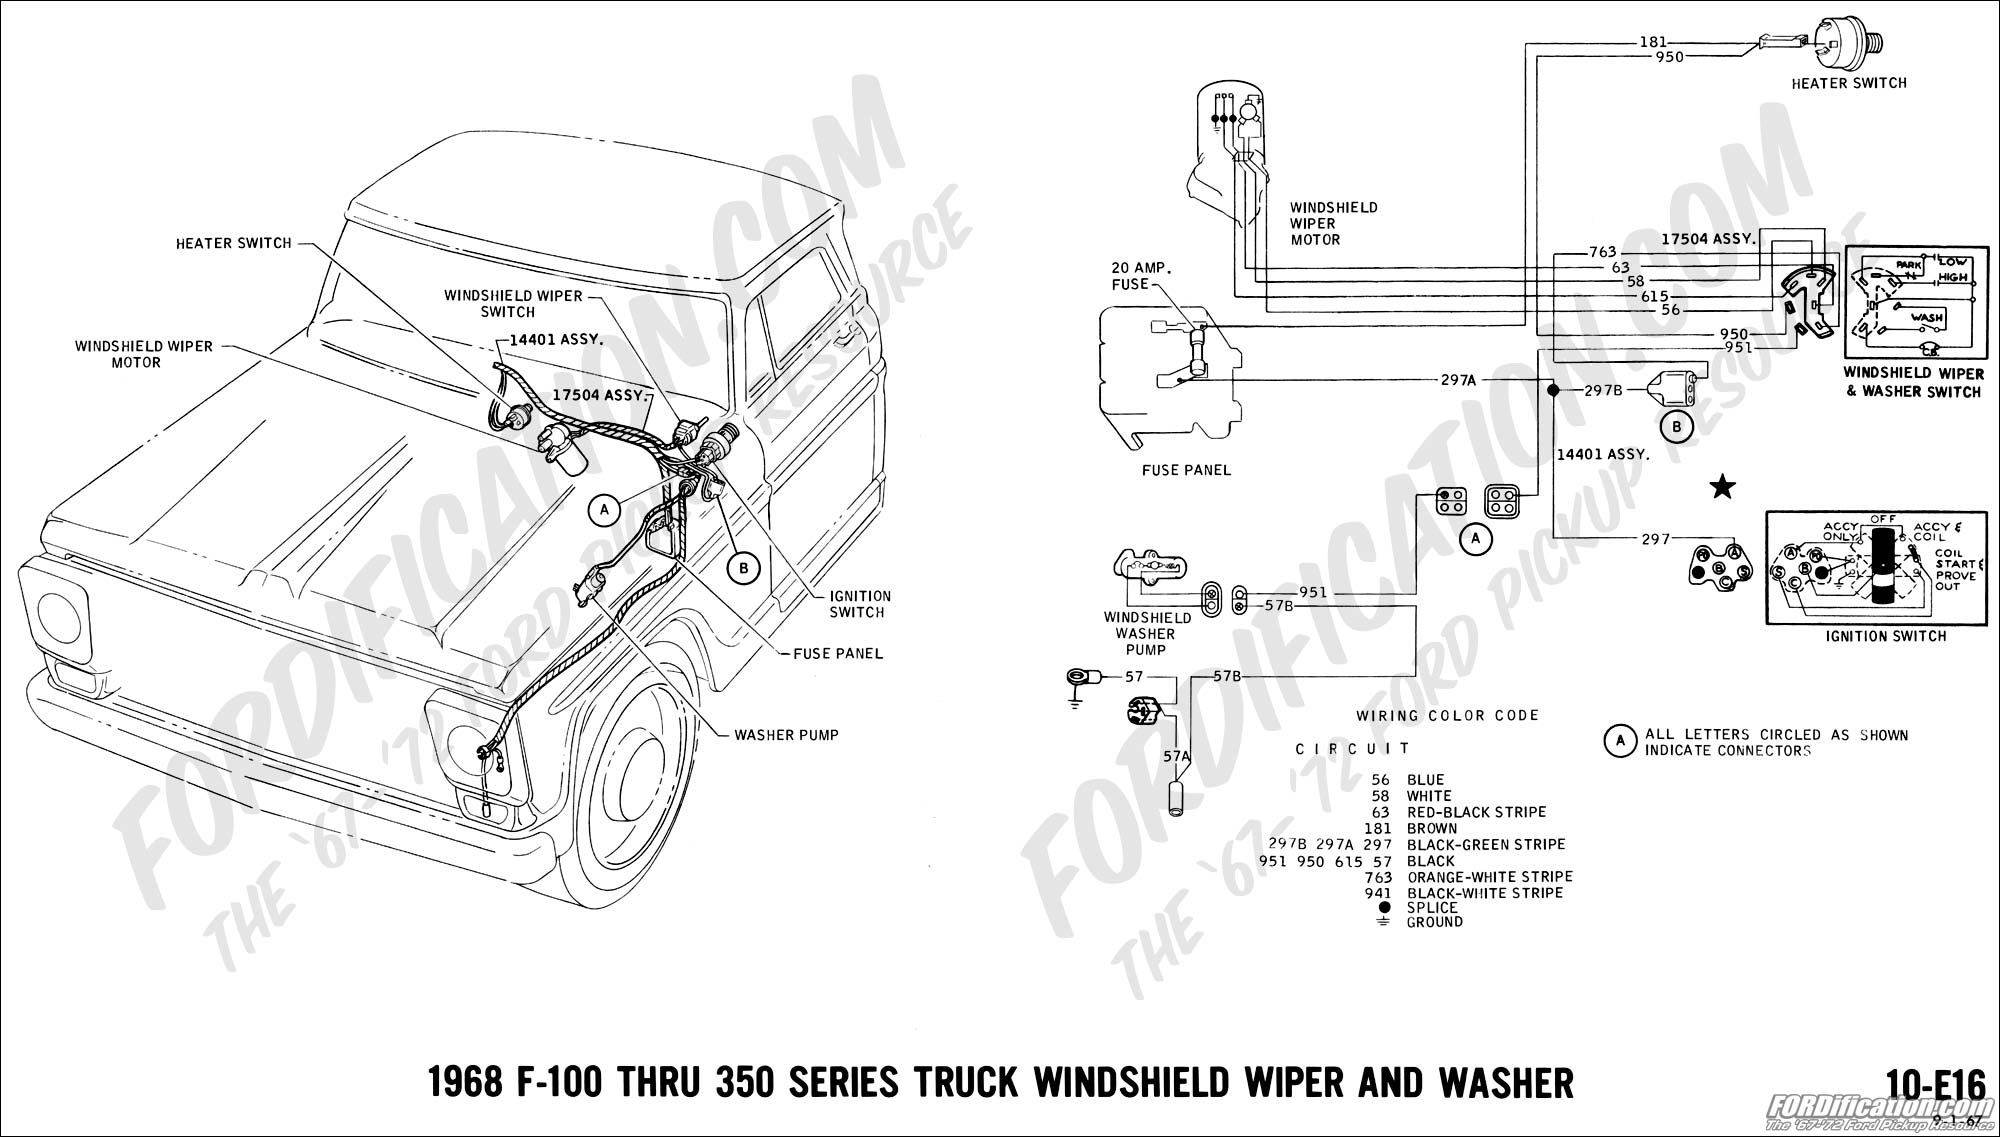 68 18 ford truck technical drawings and schematics section h wiring 1999 ford explorer rear wiper wiring diagram at crackthecode.co